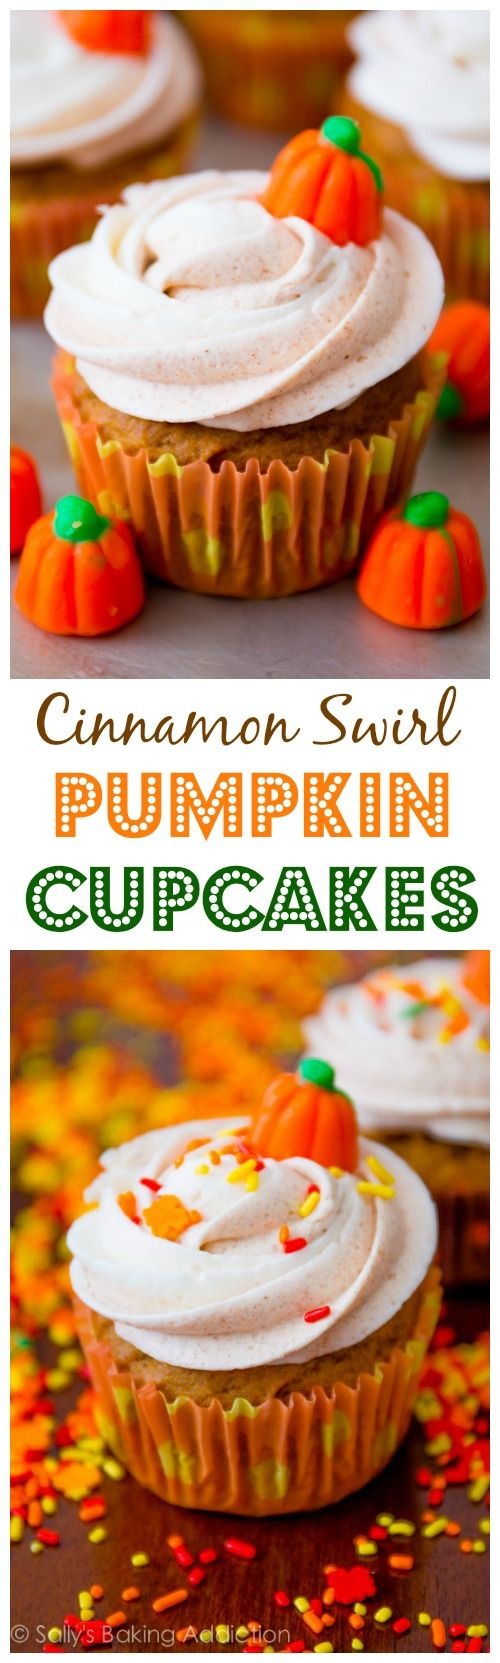 Cinnamon Swirl Pumpkin Cupcakes - Perfection. Absolute perfection!